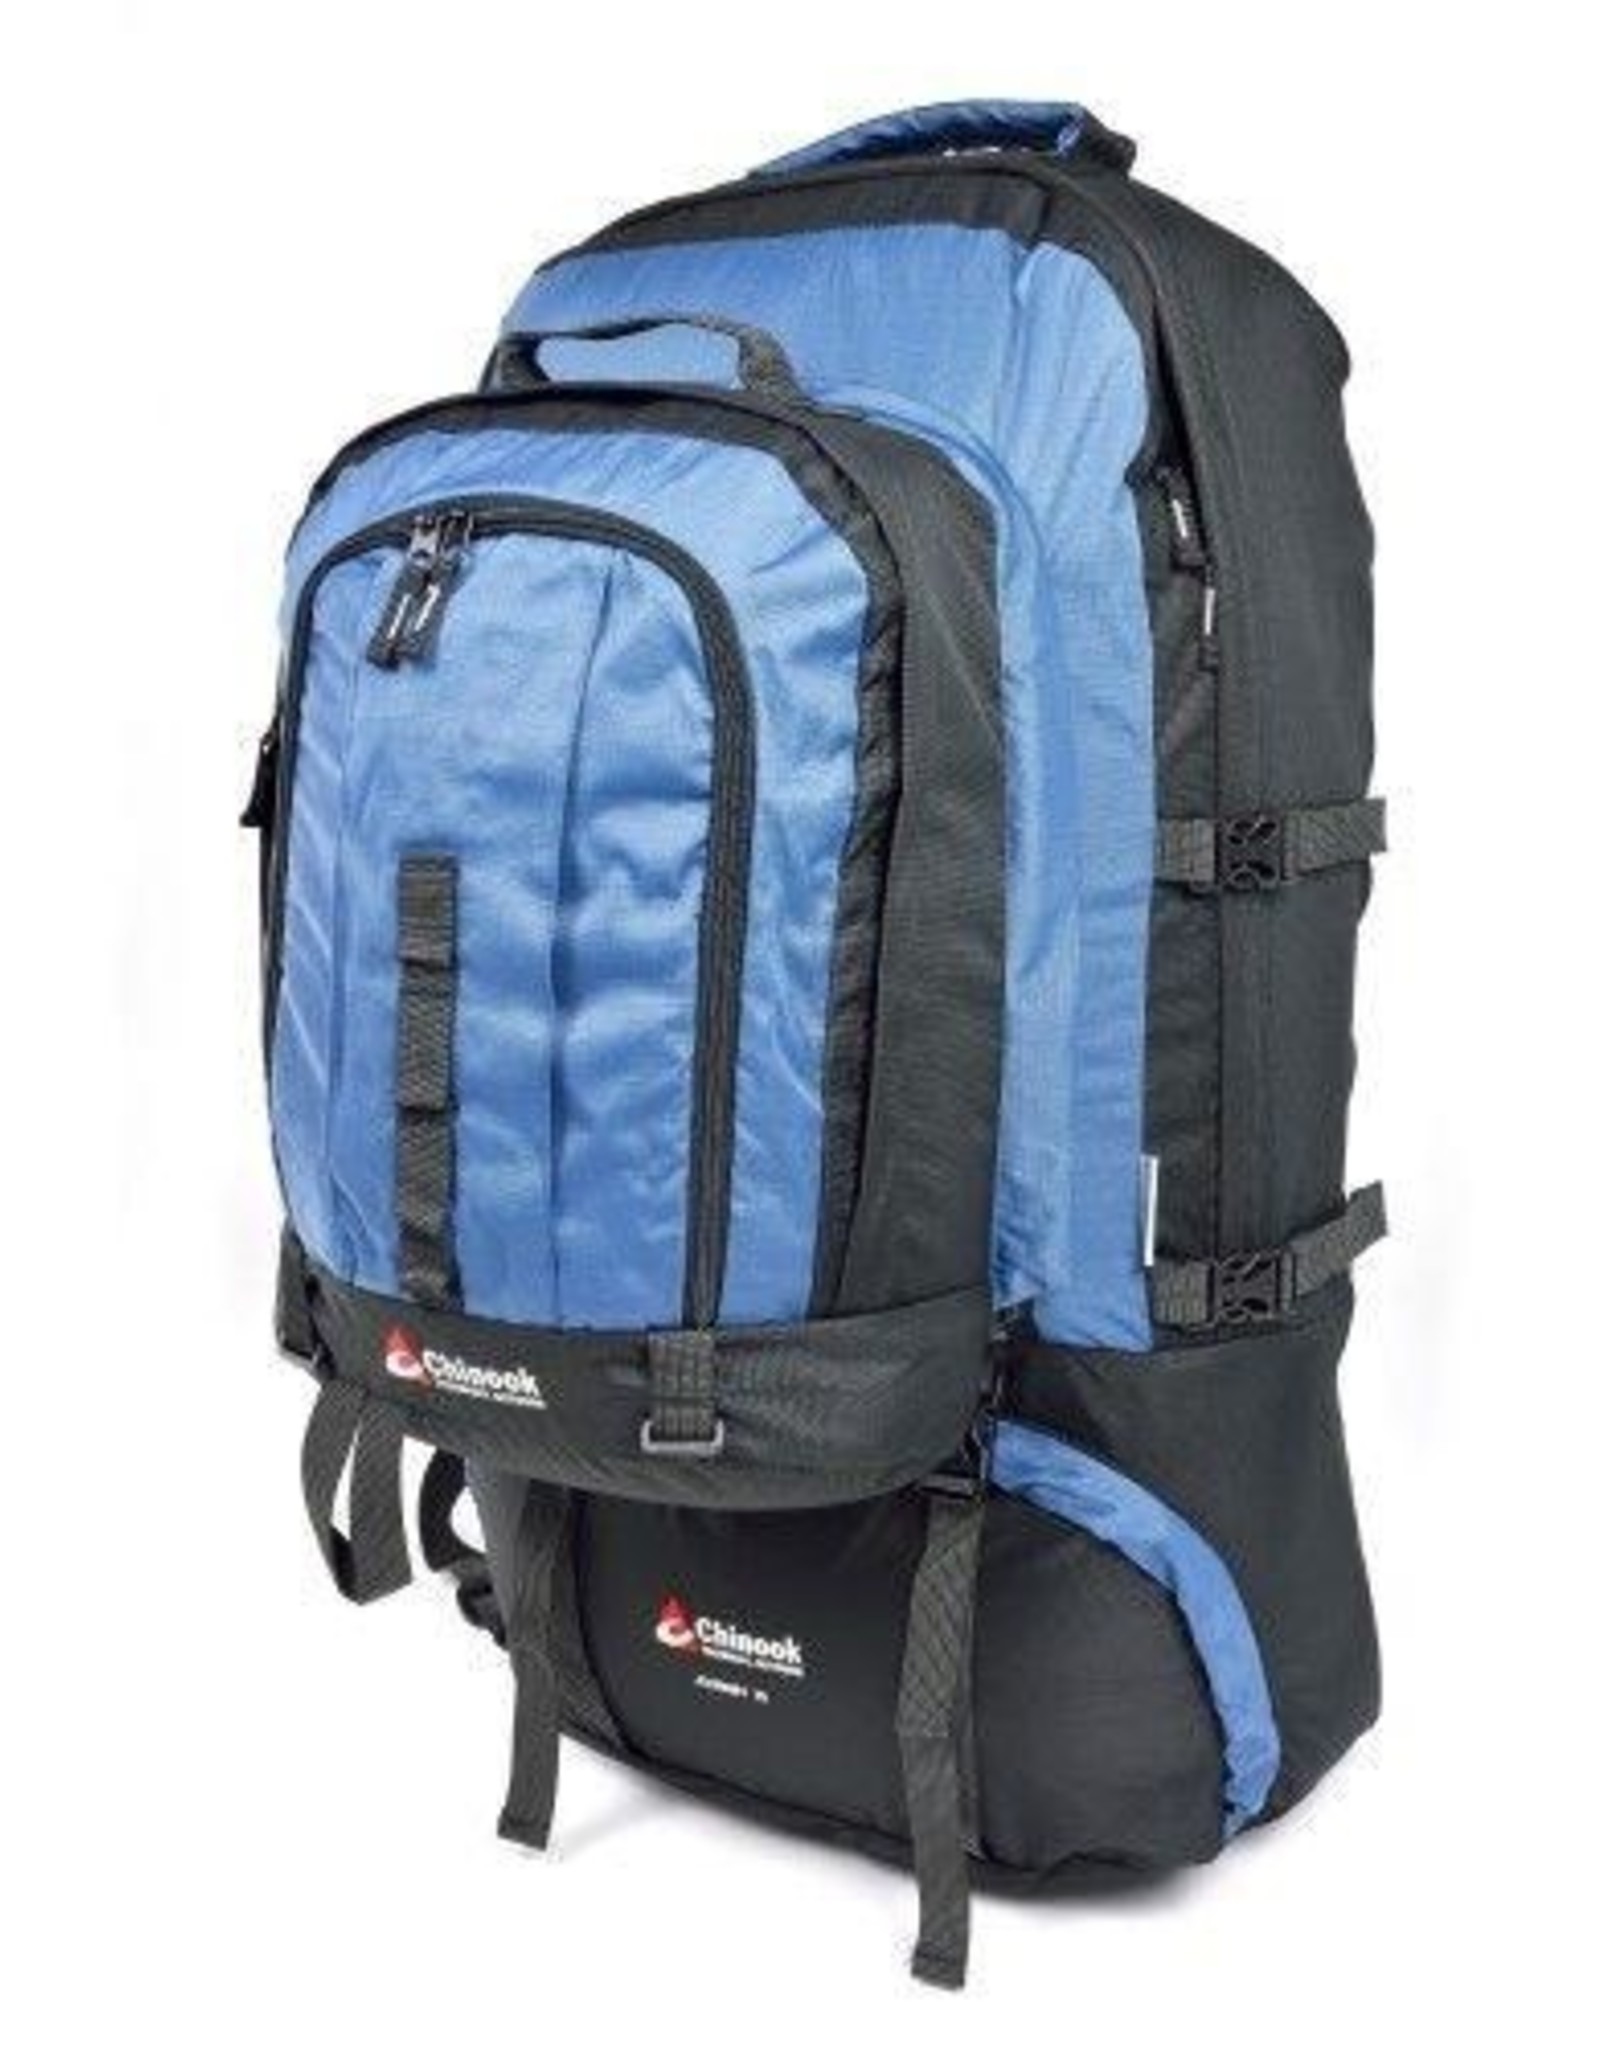 CHINOOK TECHNICAL OUTDOOR Chinook Journey 75 backpack - Blue/Black